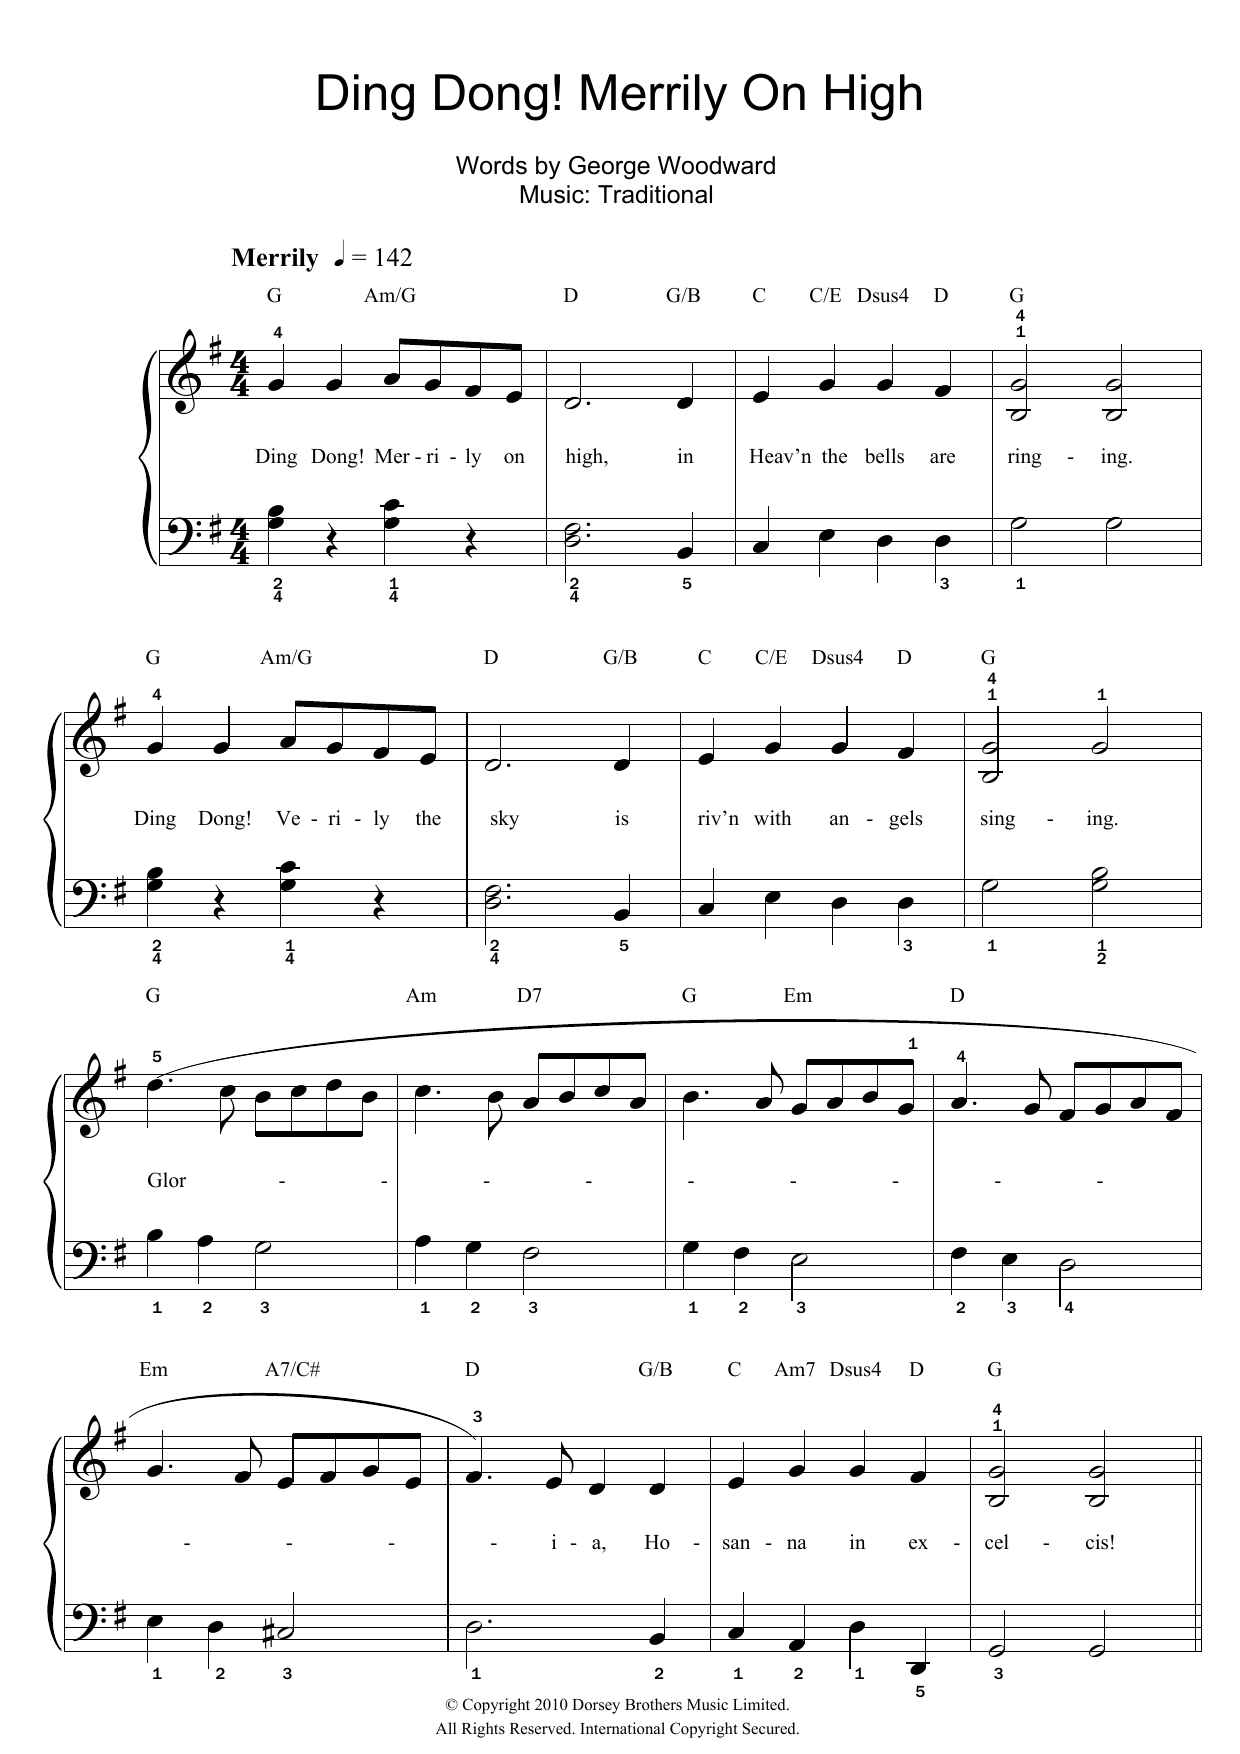 Ding dong merrily on high lyrics and chords